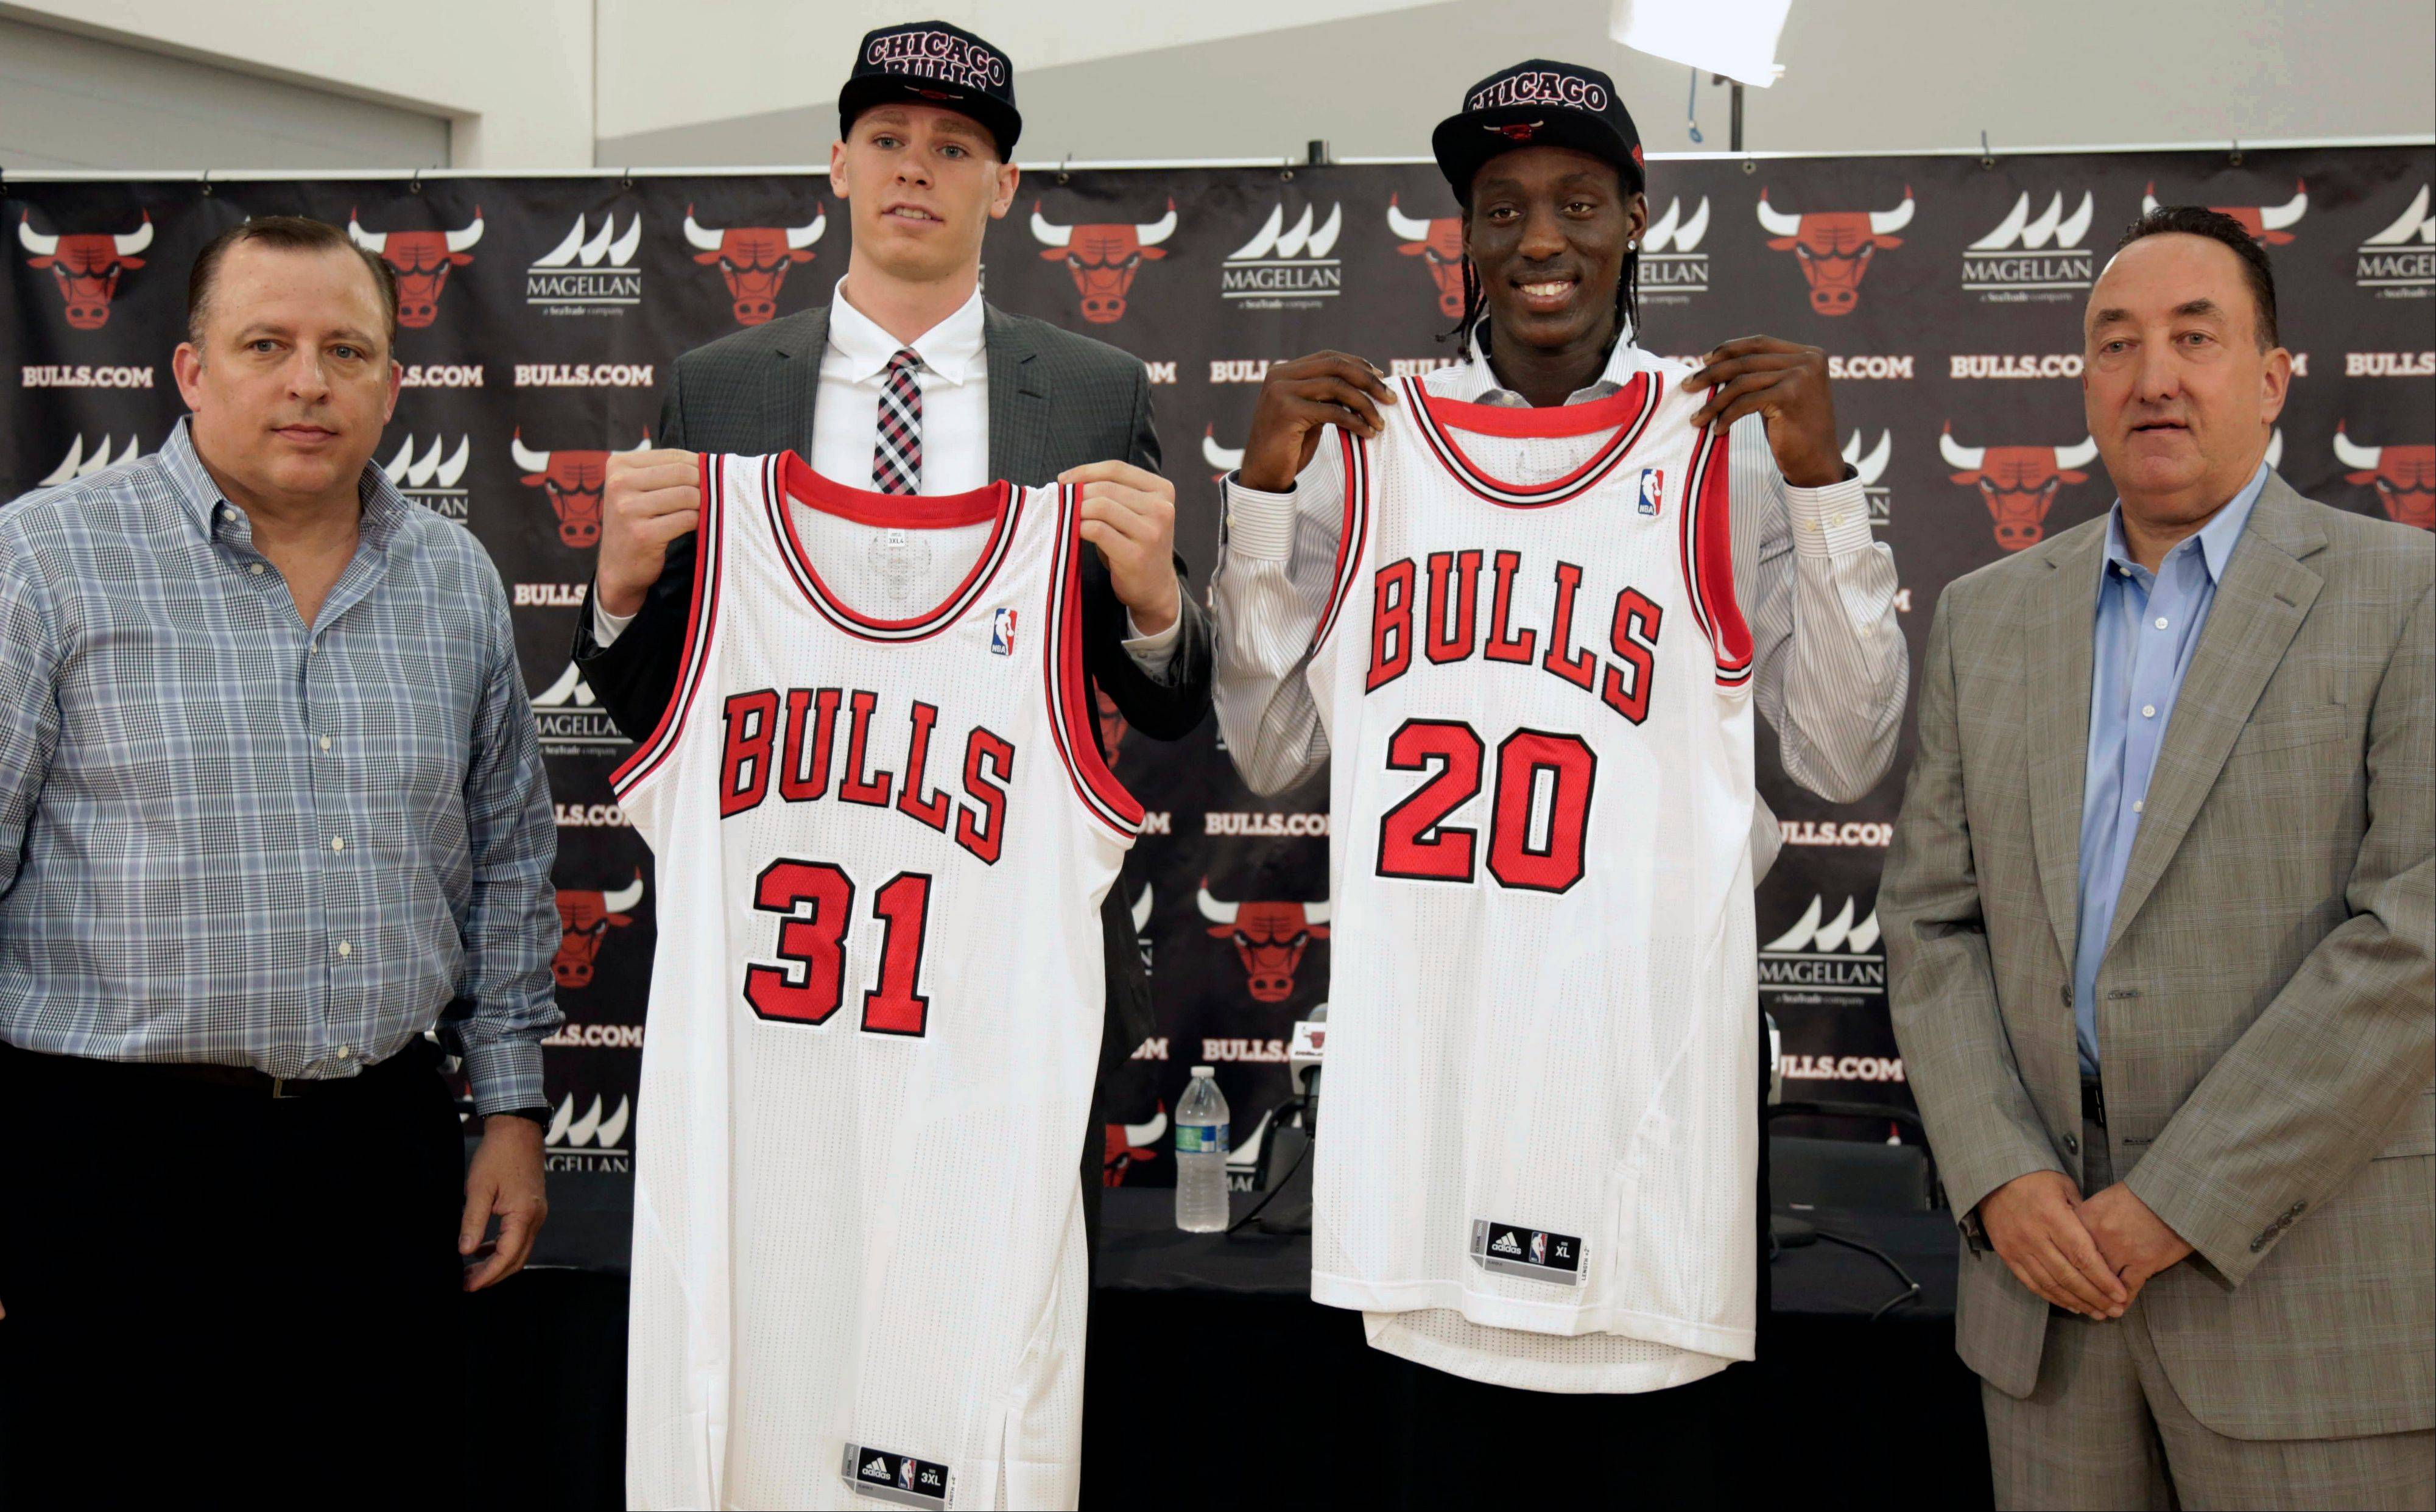 Bulls coach Tom Thibodeau, left, and general manager Gar Forman, right, introduce the team's 2013 draft picks — Erik Murphy (31) and Tony Snell (20) — at the Berto Center on Monday.